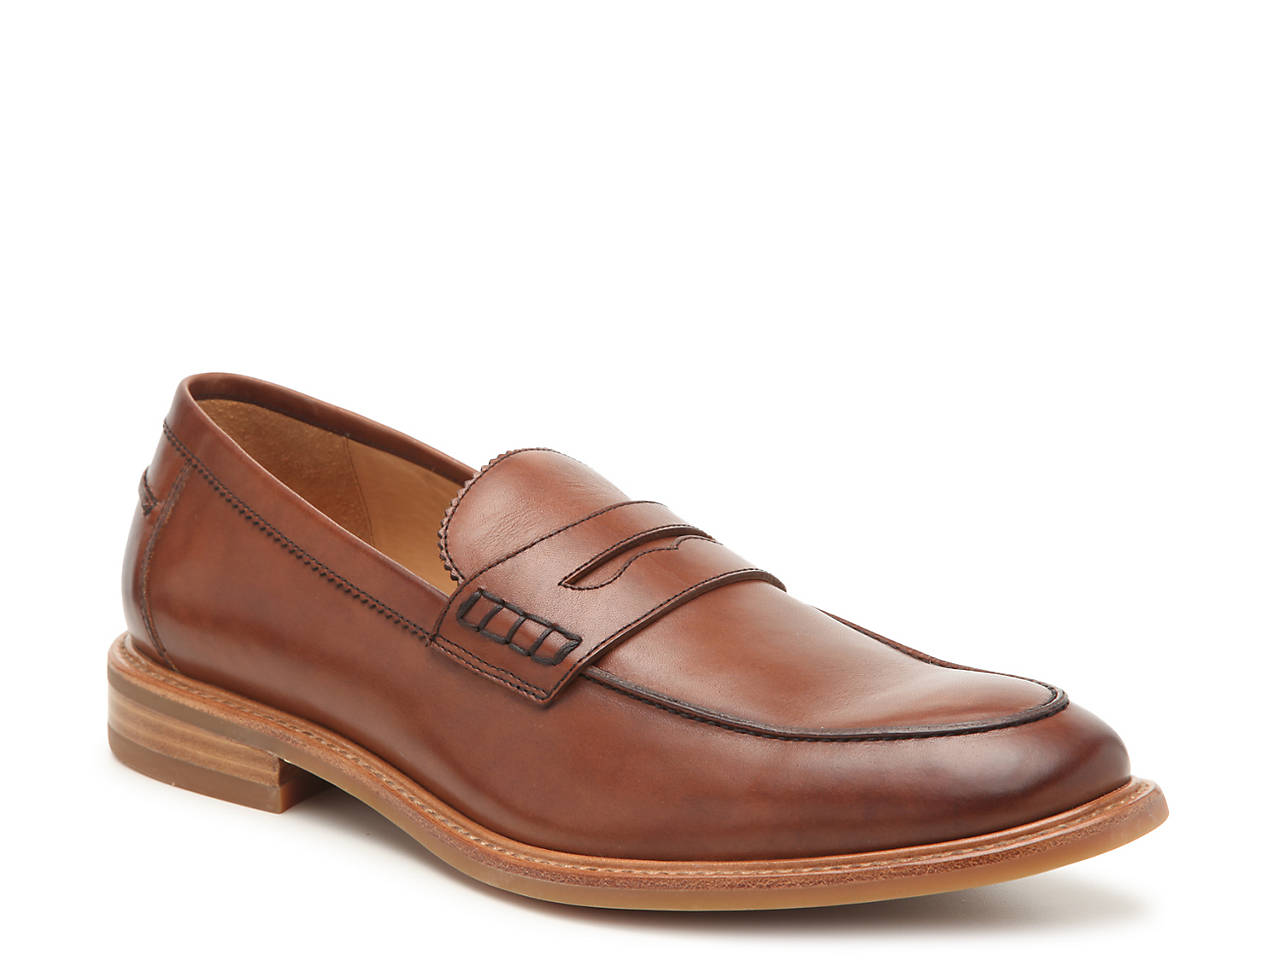 3129669a099 Warfield   Grand Roby Penny Loafer Men s Shoes